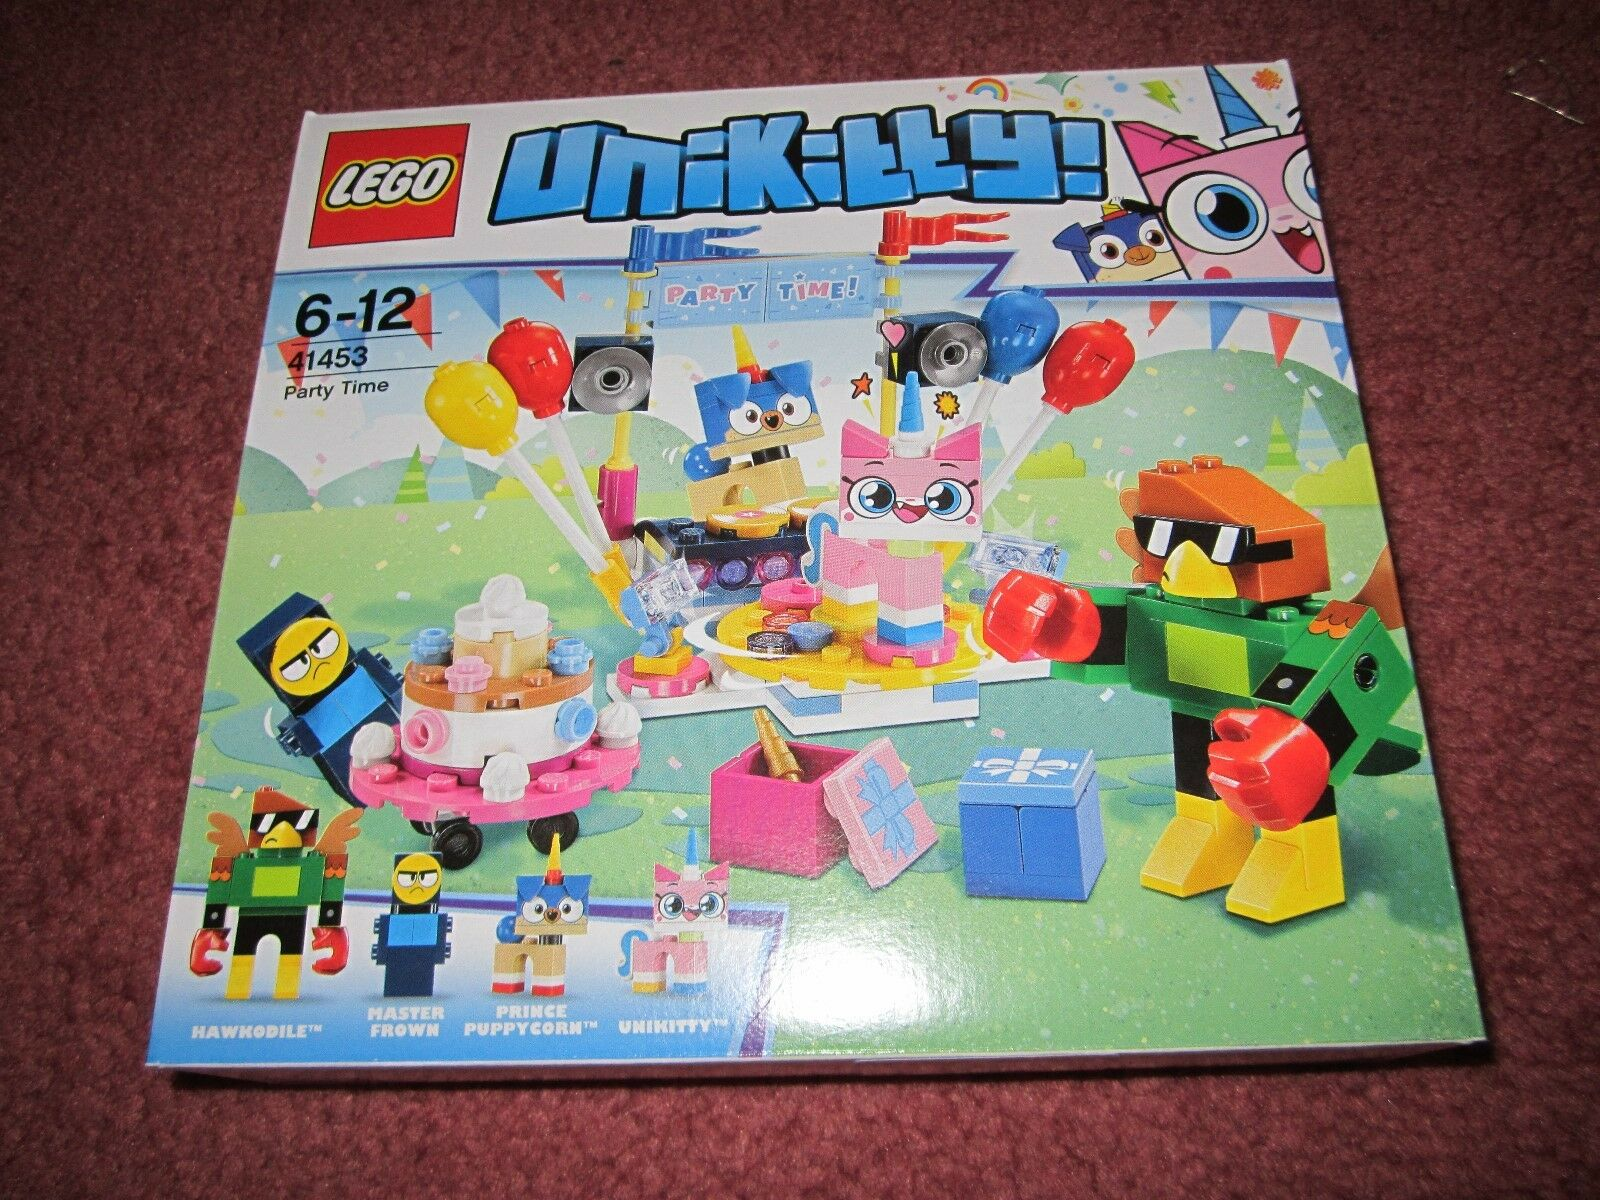 LEGO UNIKITTY PARTY TIME 41453 - NEW BOXED SEALED